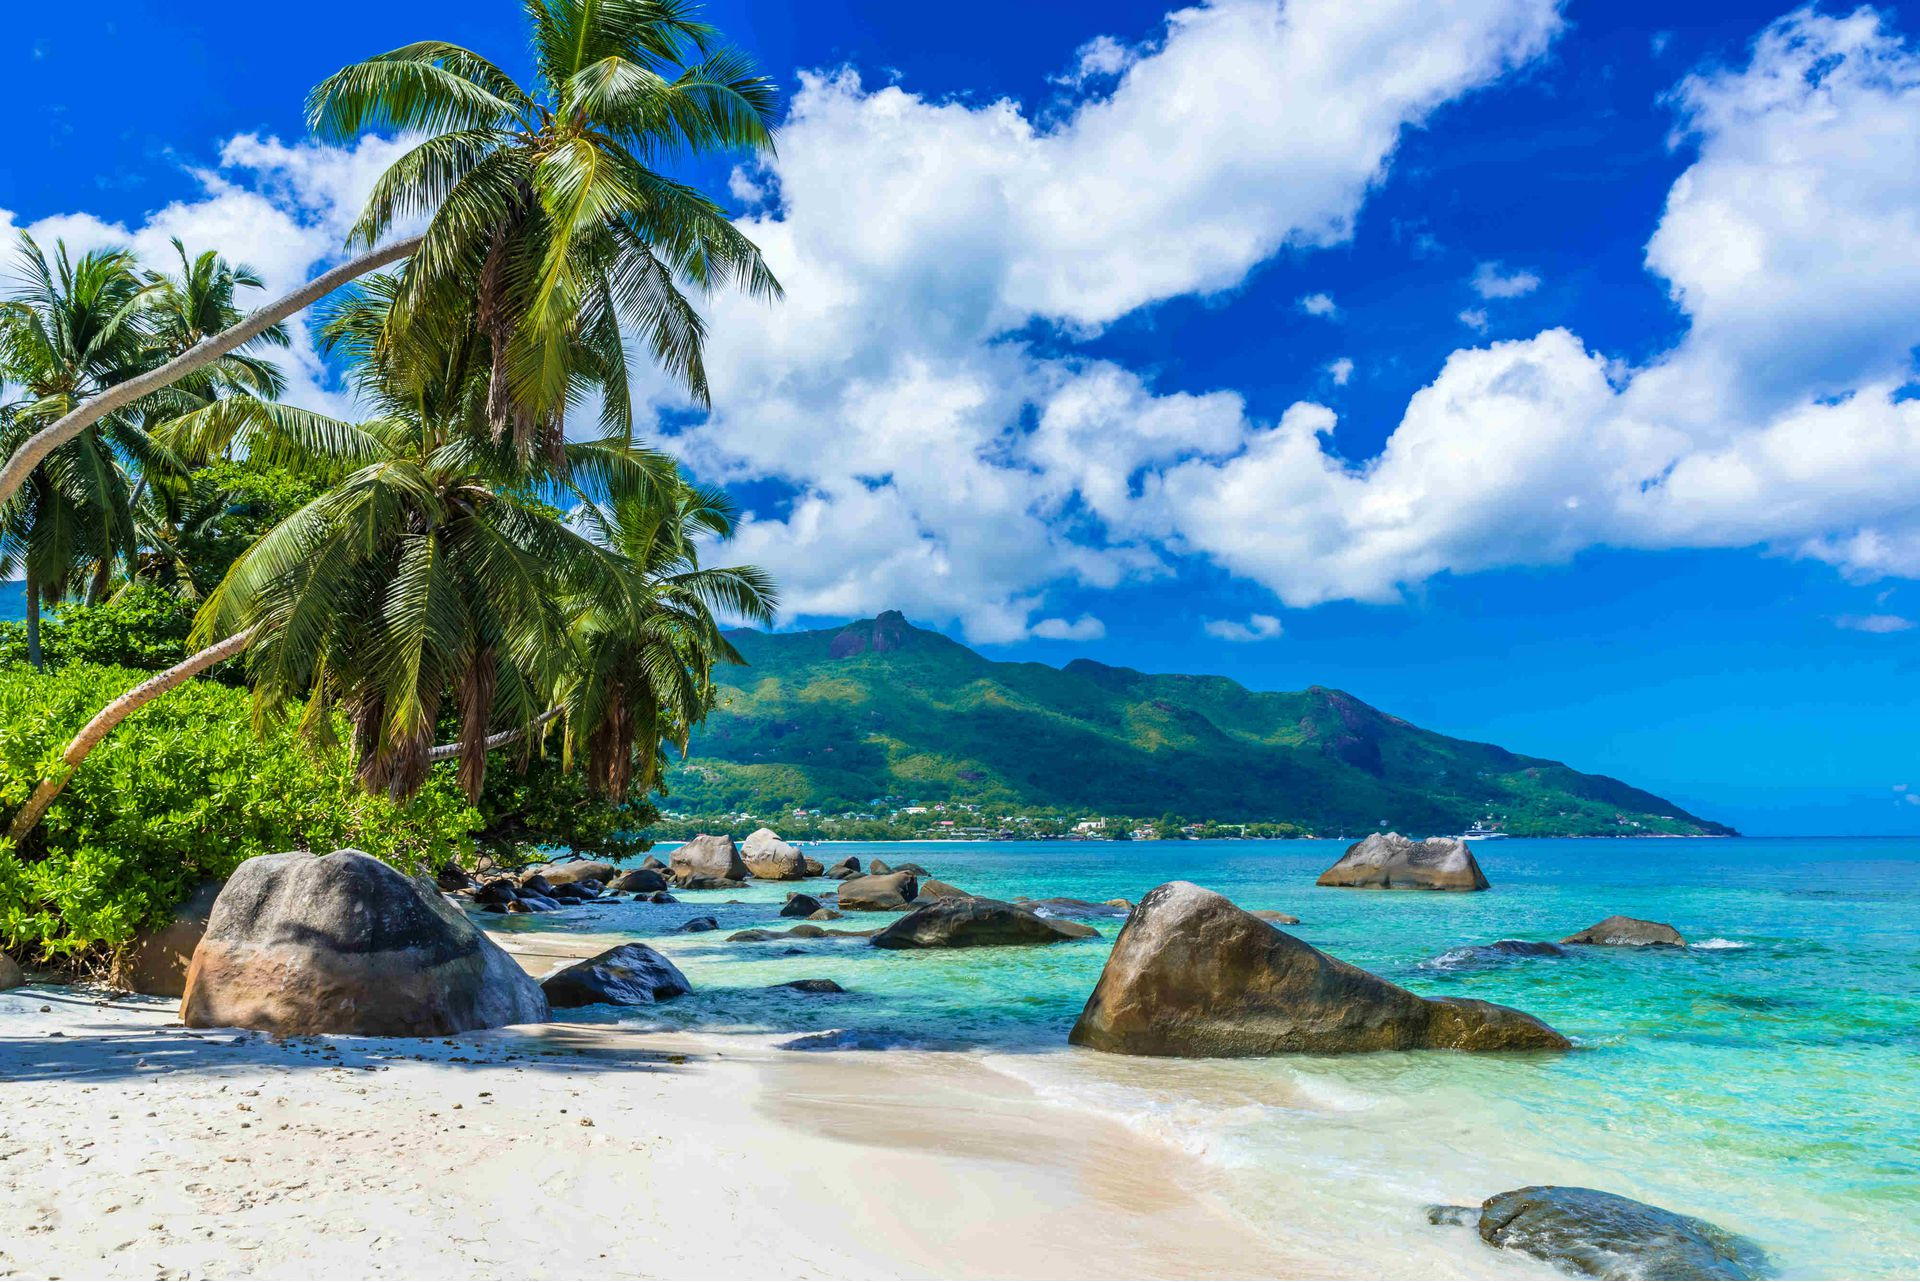 Seychelles diving original diving Top 5 most beautiful islands in the world